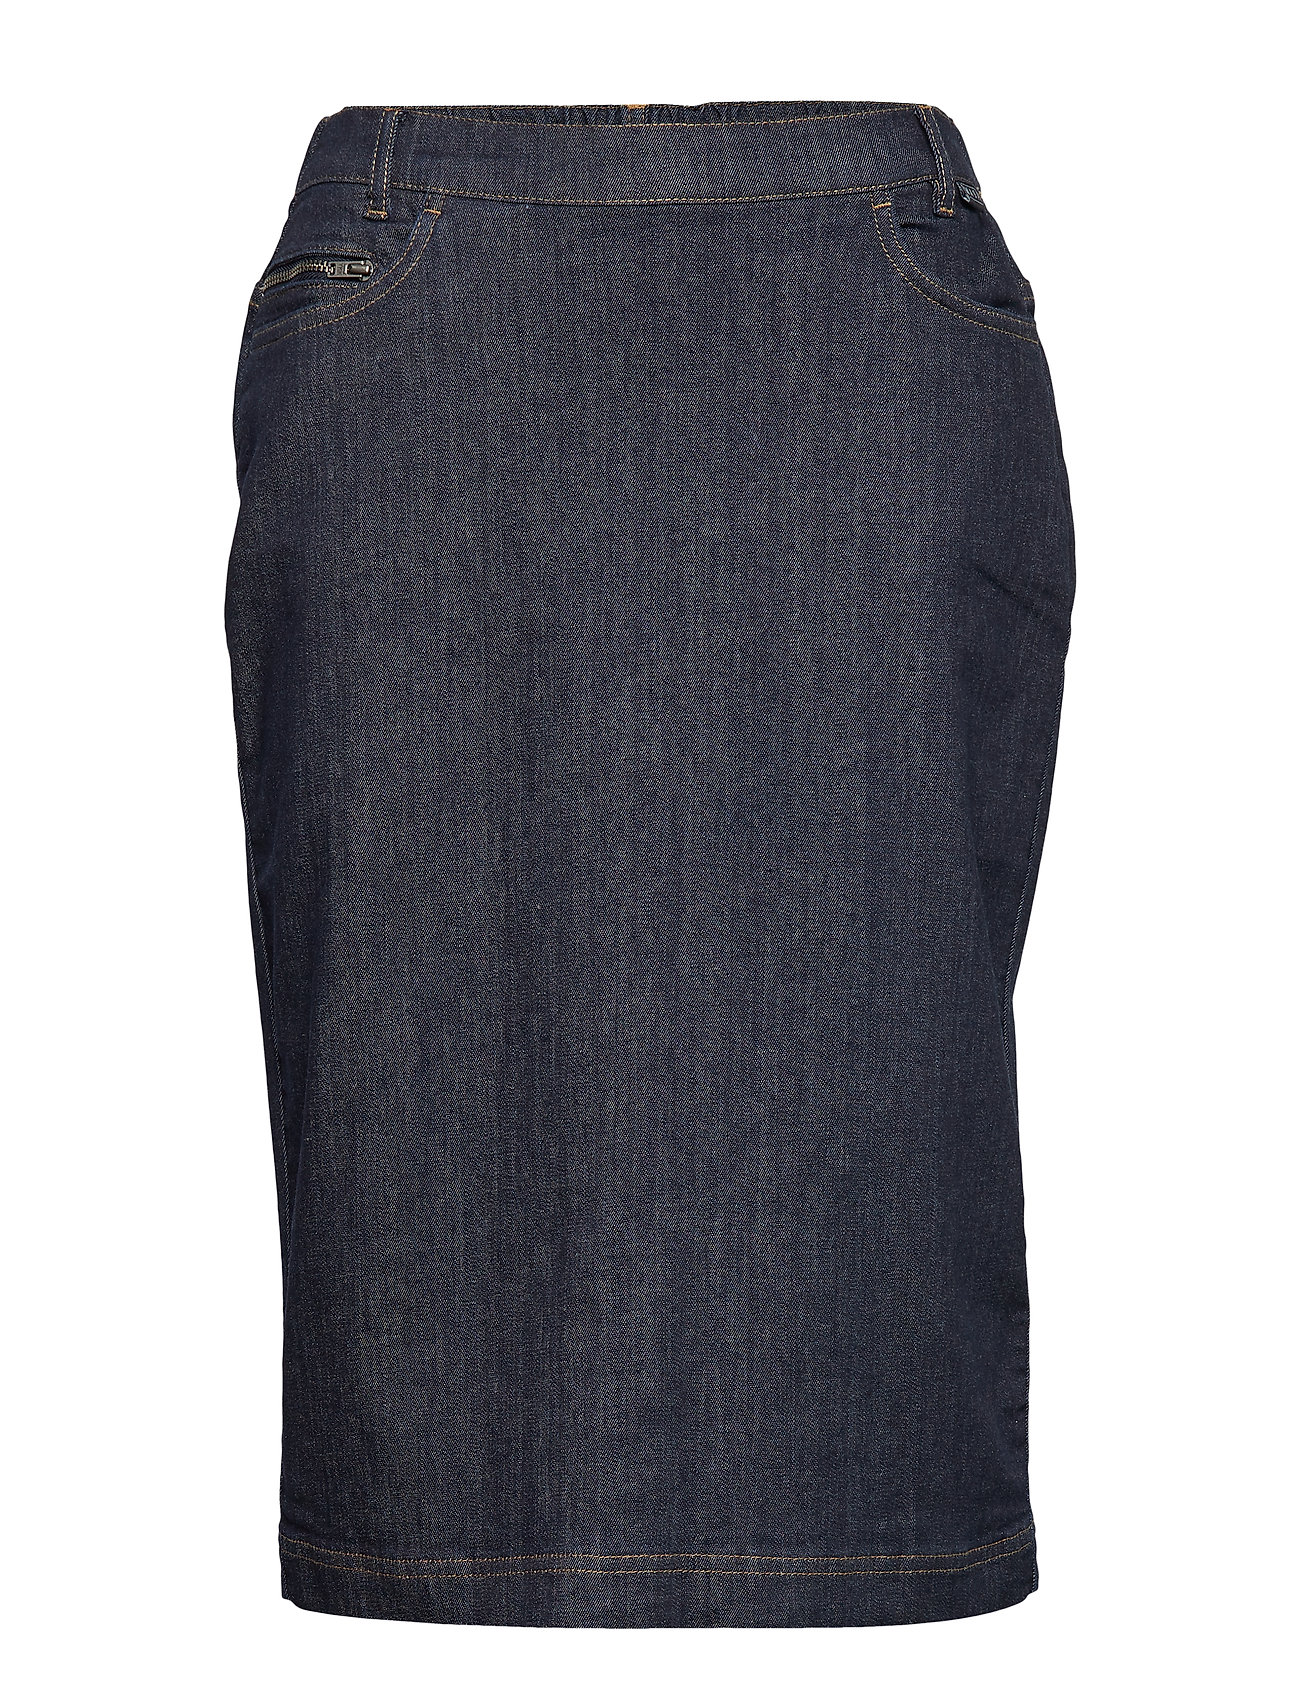 Masai Saba skirt - DARK DENIM